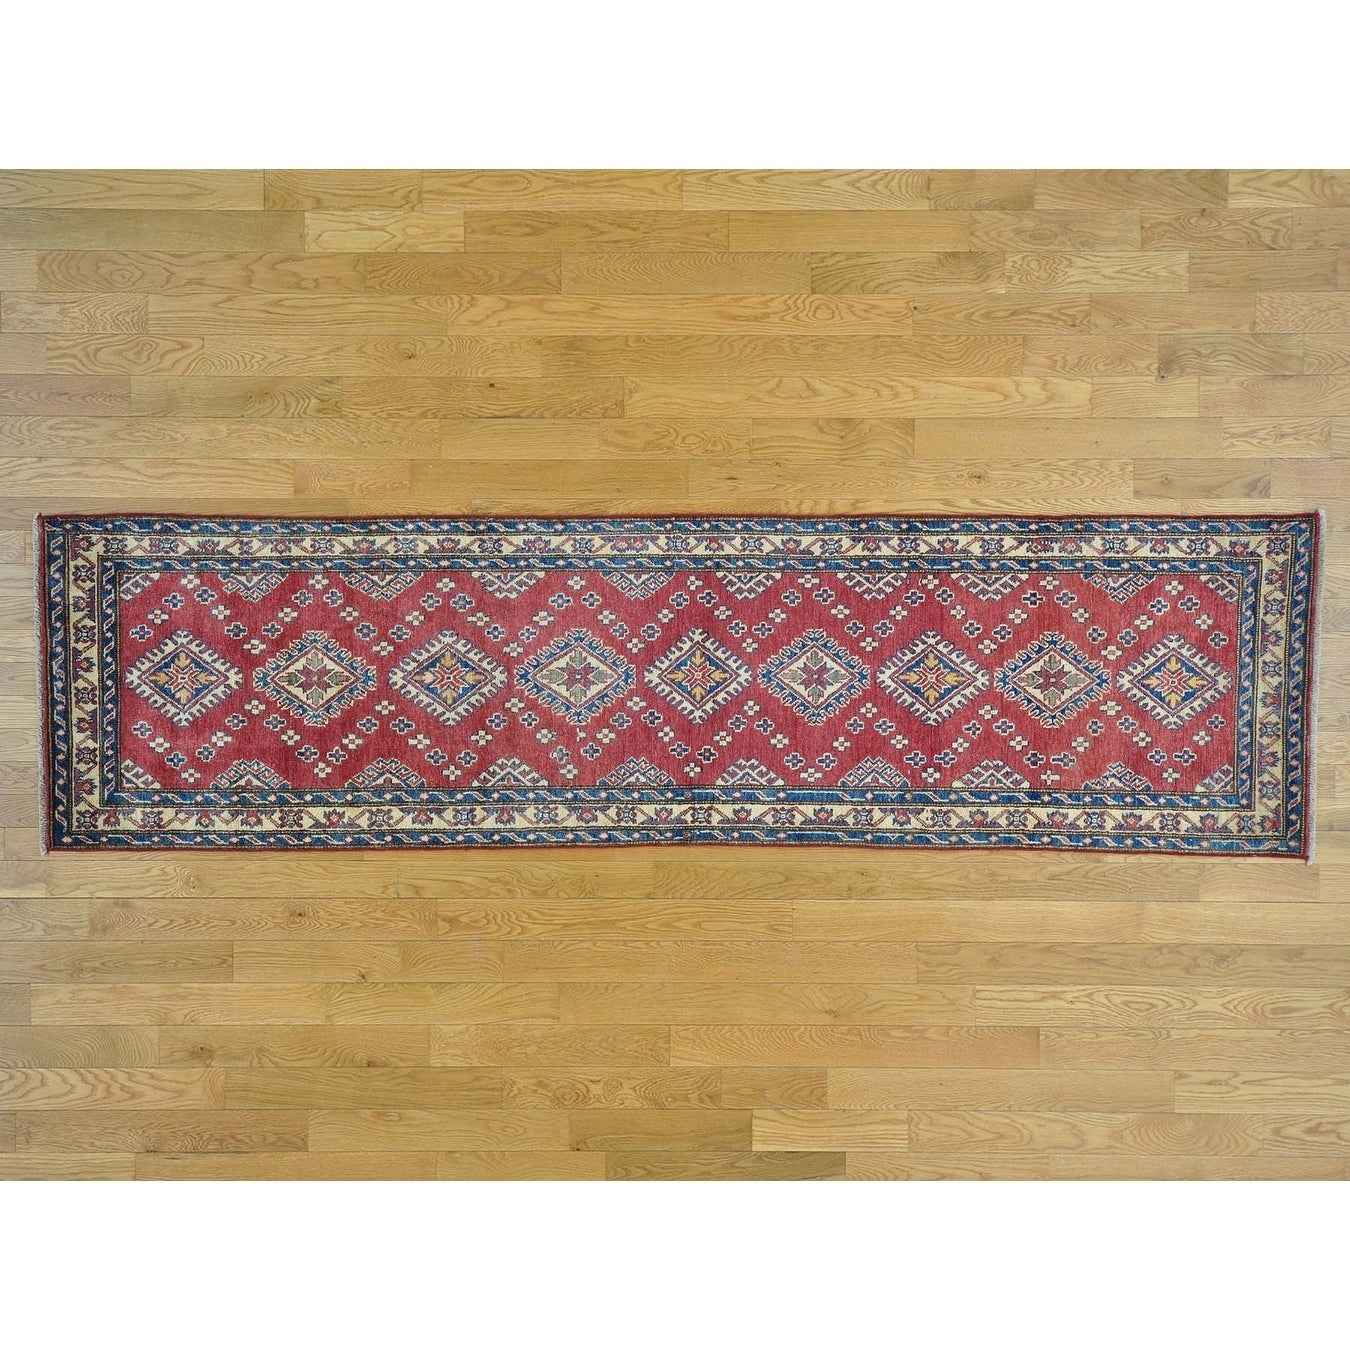 Hand Knotted Red Kazak with Wool Oriental Rug - 29 x 105